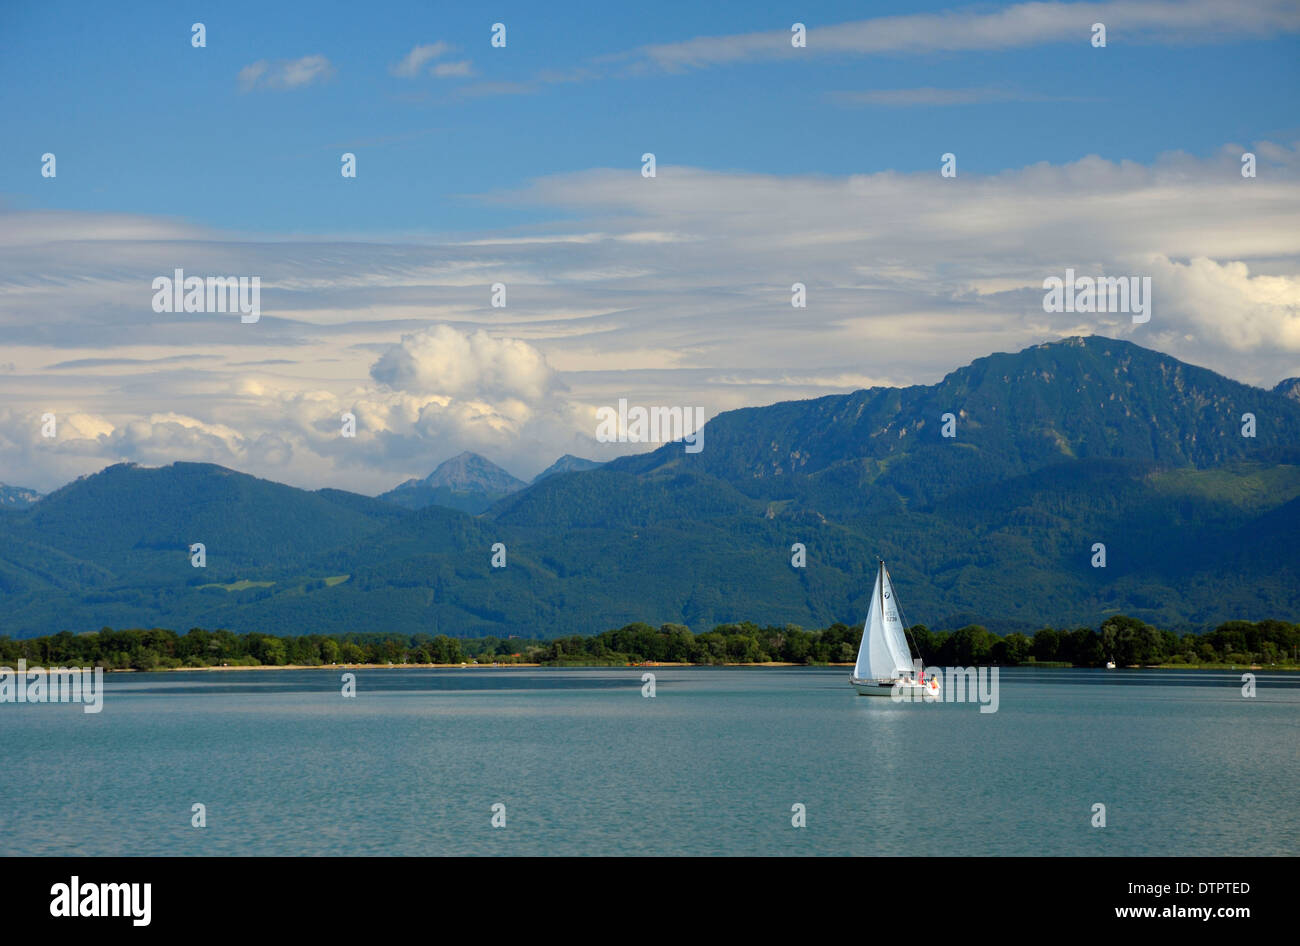 Sailboat on Chiemsee, Bavaria, Germany Stock Photo